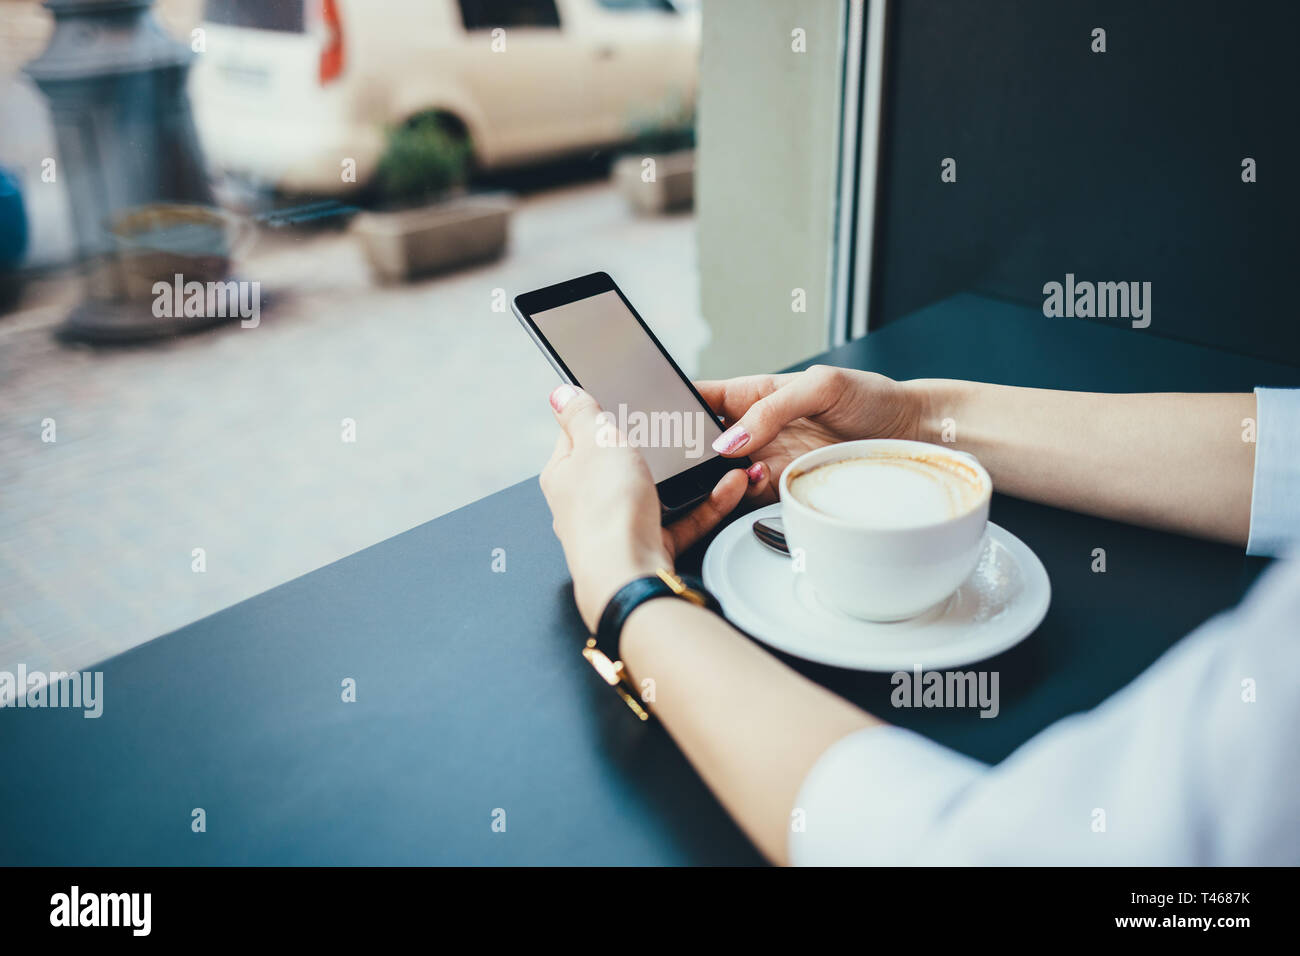 Close-up of female's hands wearing gold wristwatches holding mobile phone with empty white screen next to cup of cappuccino at table in city cafe by w - Stock Image